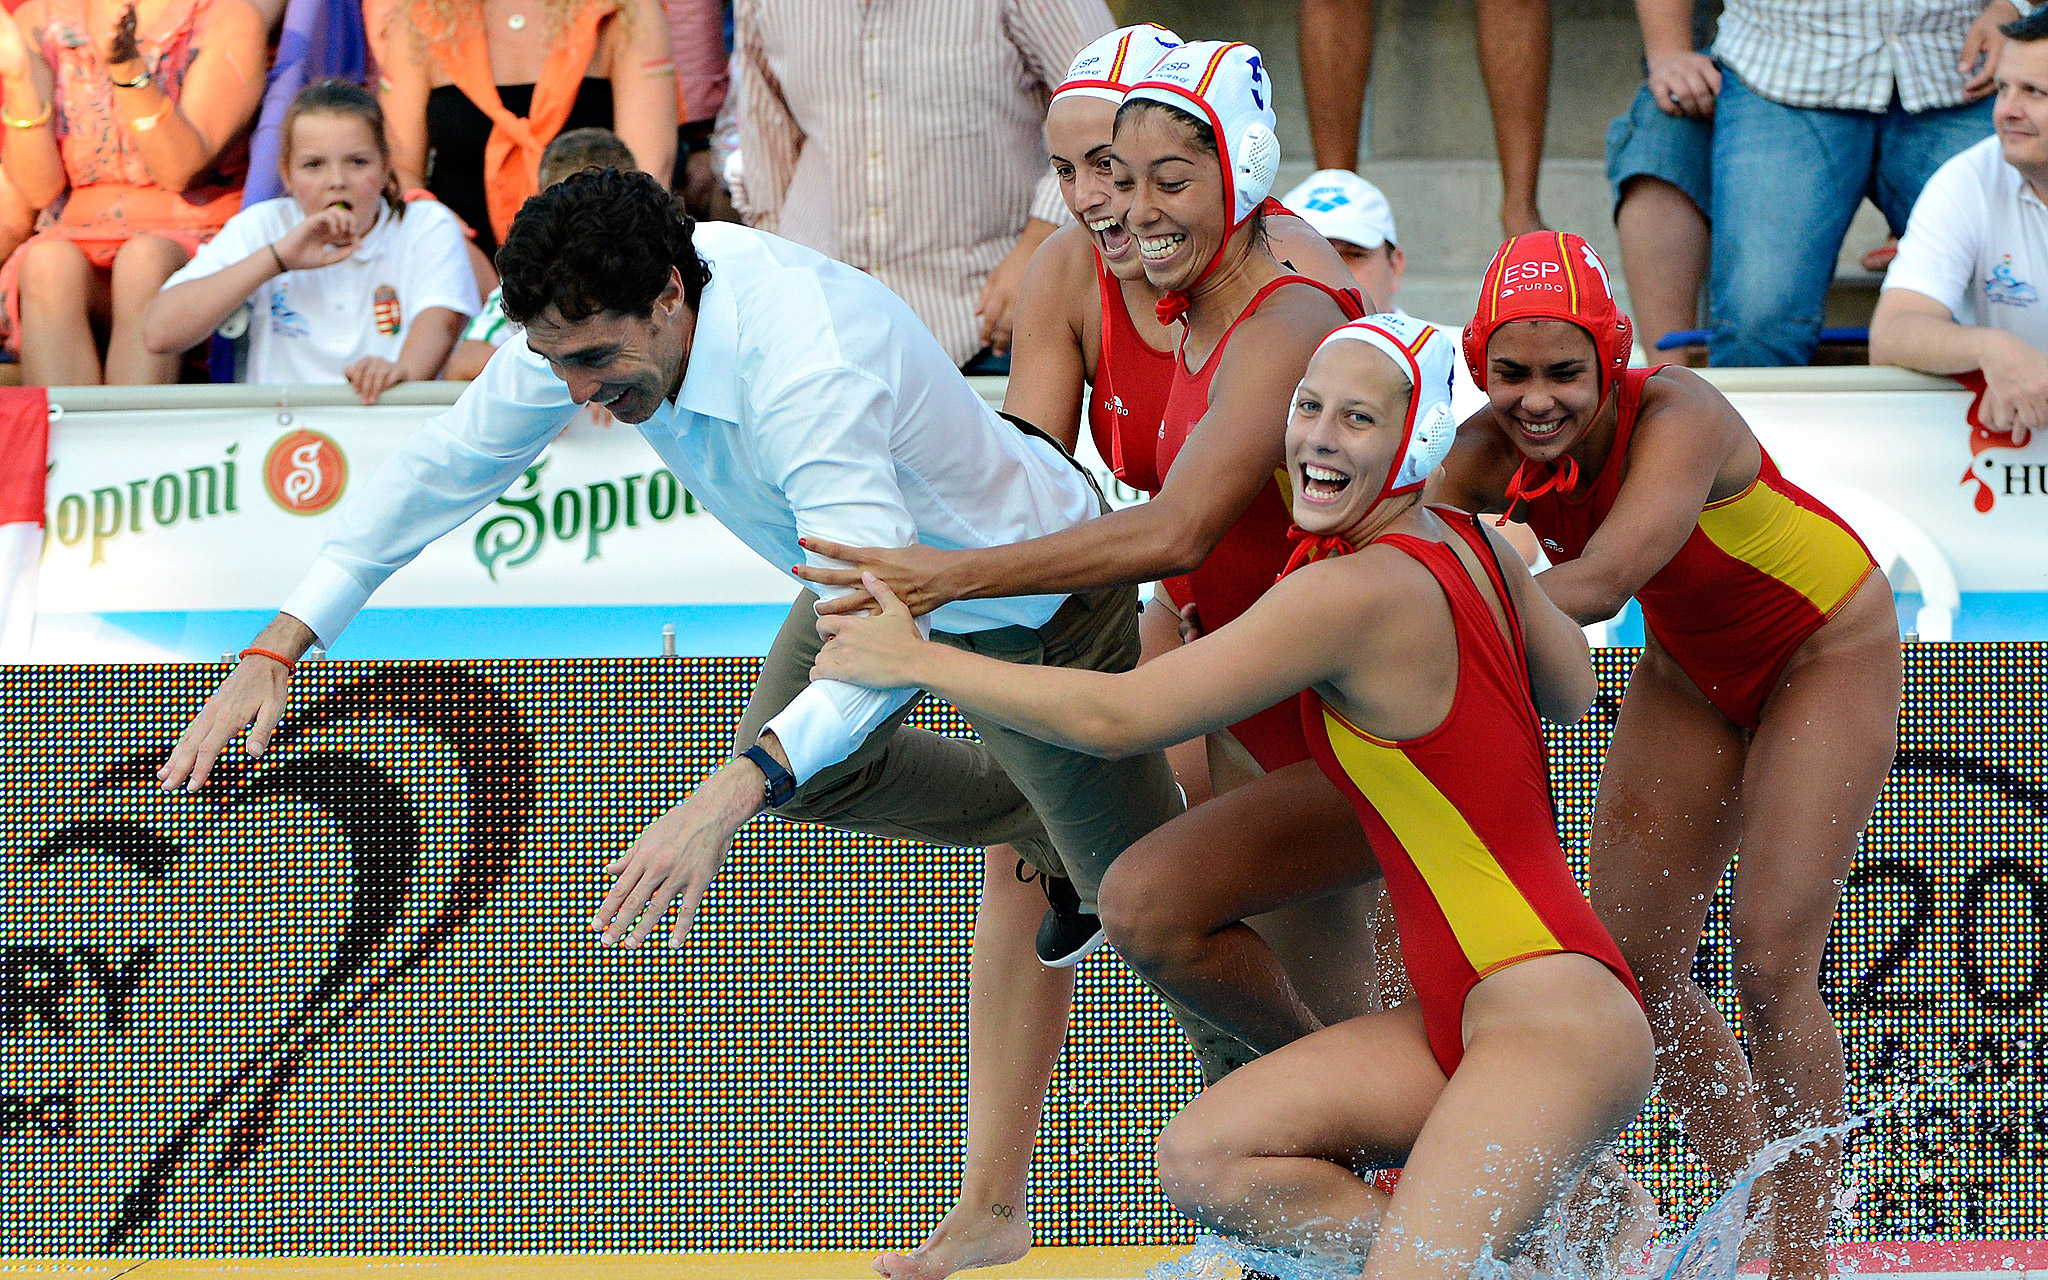 Spanish players throw their coach Miguel Oca into the pool as they celebrate their win over the Netherlands in the women's final at the European water polo championships in Hajos Alfred Swimming Pool in Budapest, Hungary.